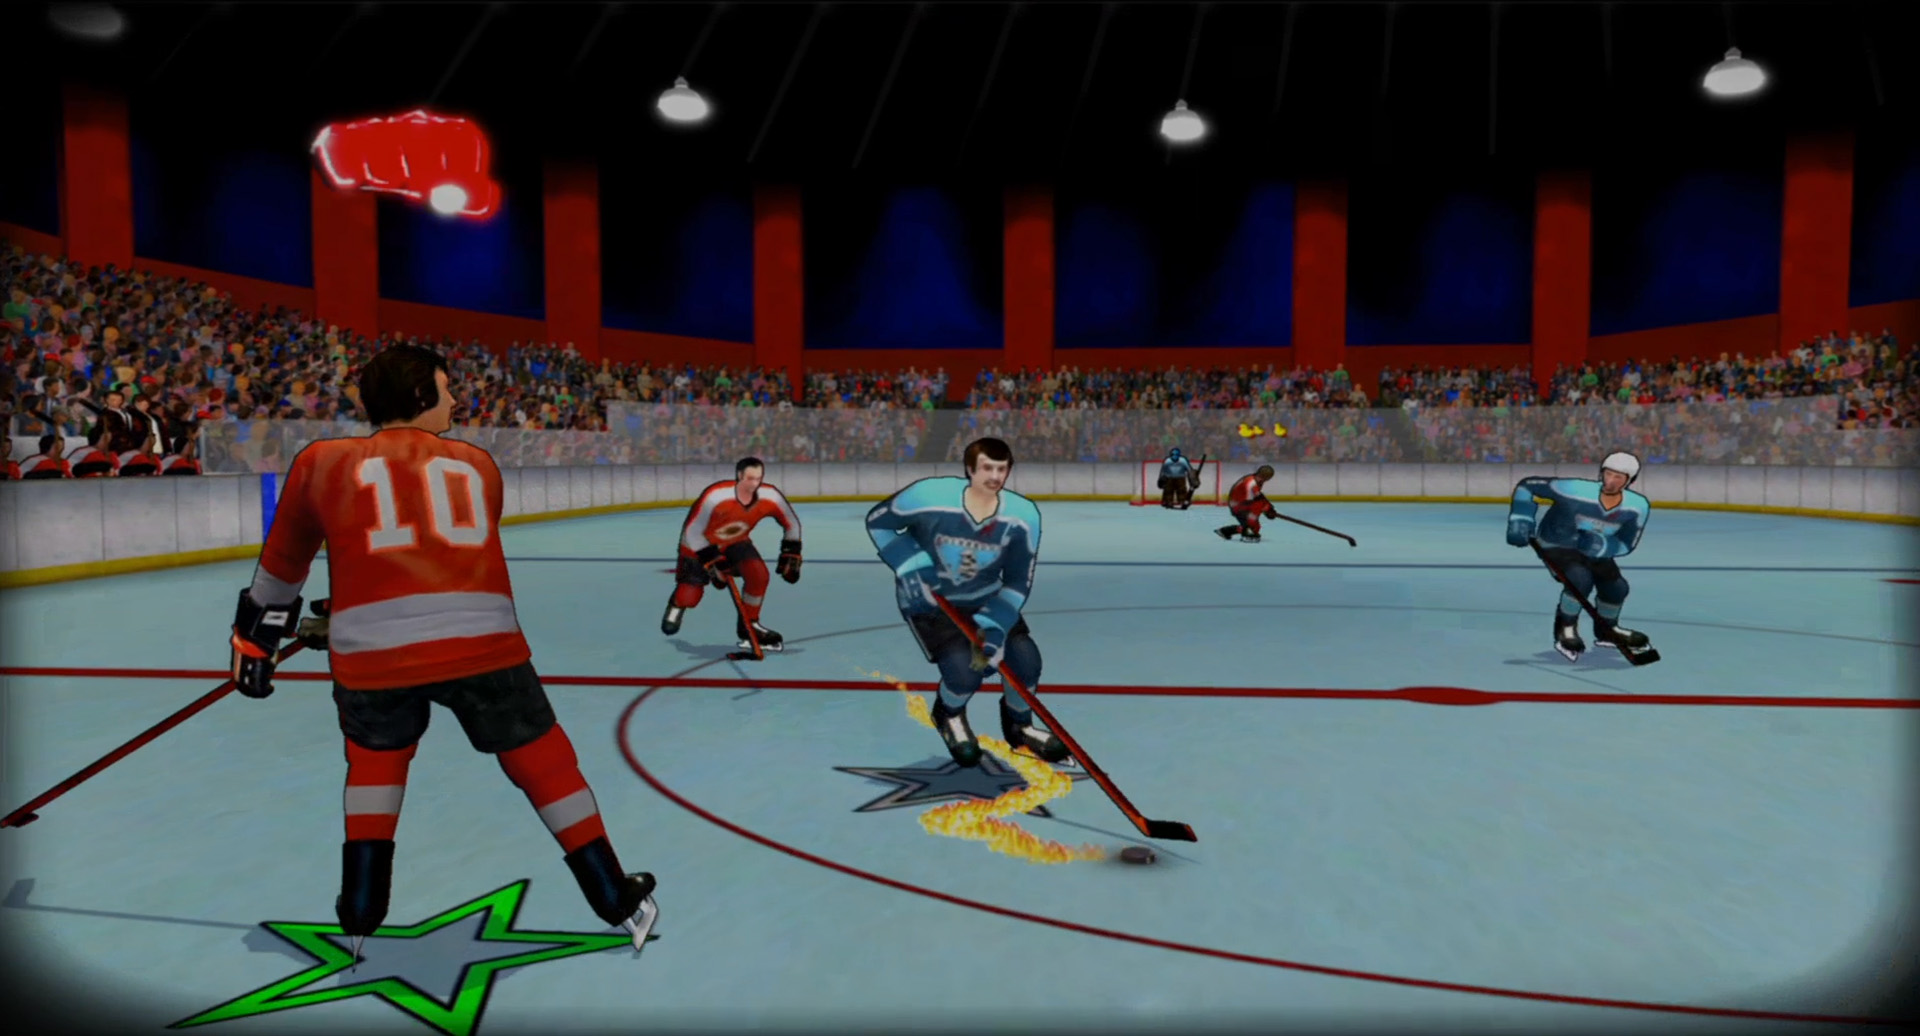 New Arcade Style Hockey Video Game Coming To Consoles In 2017